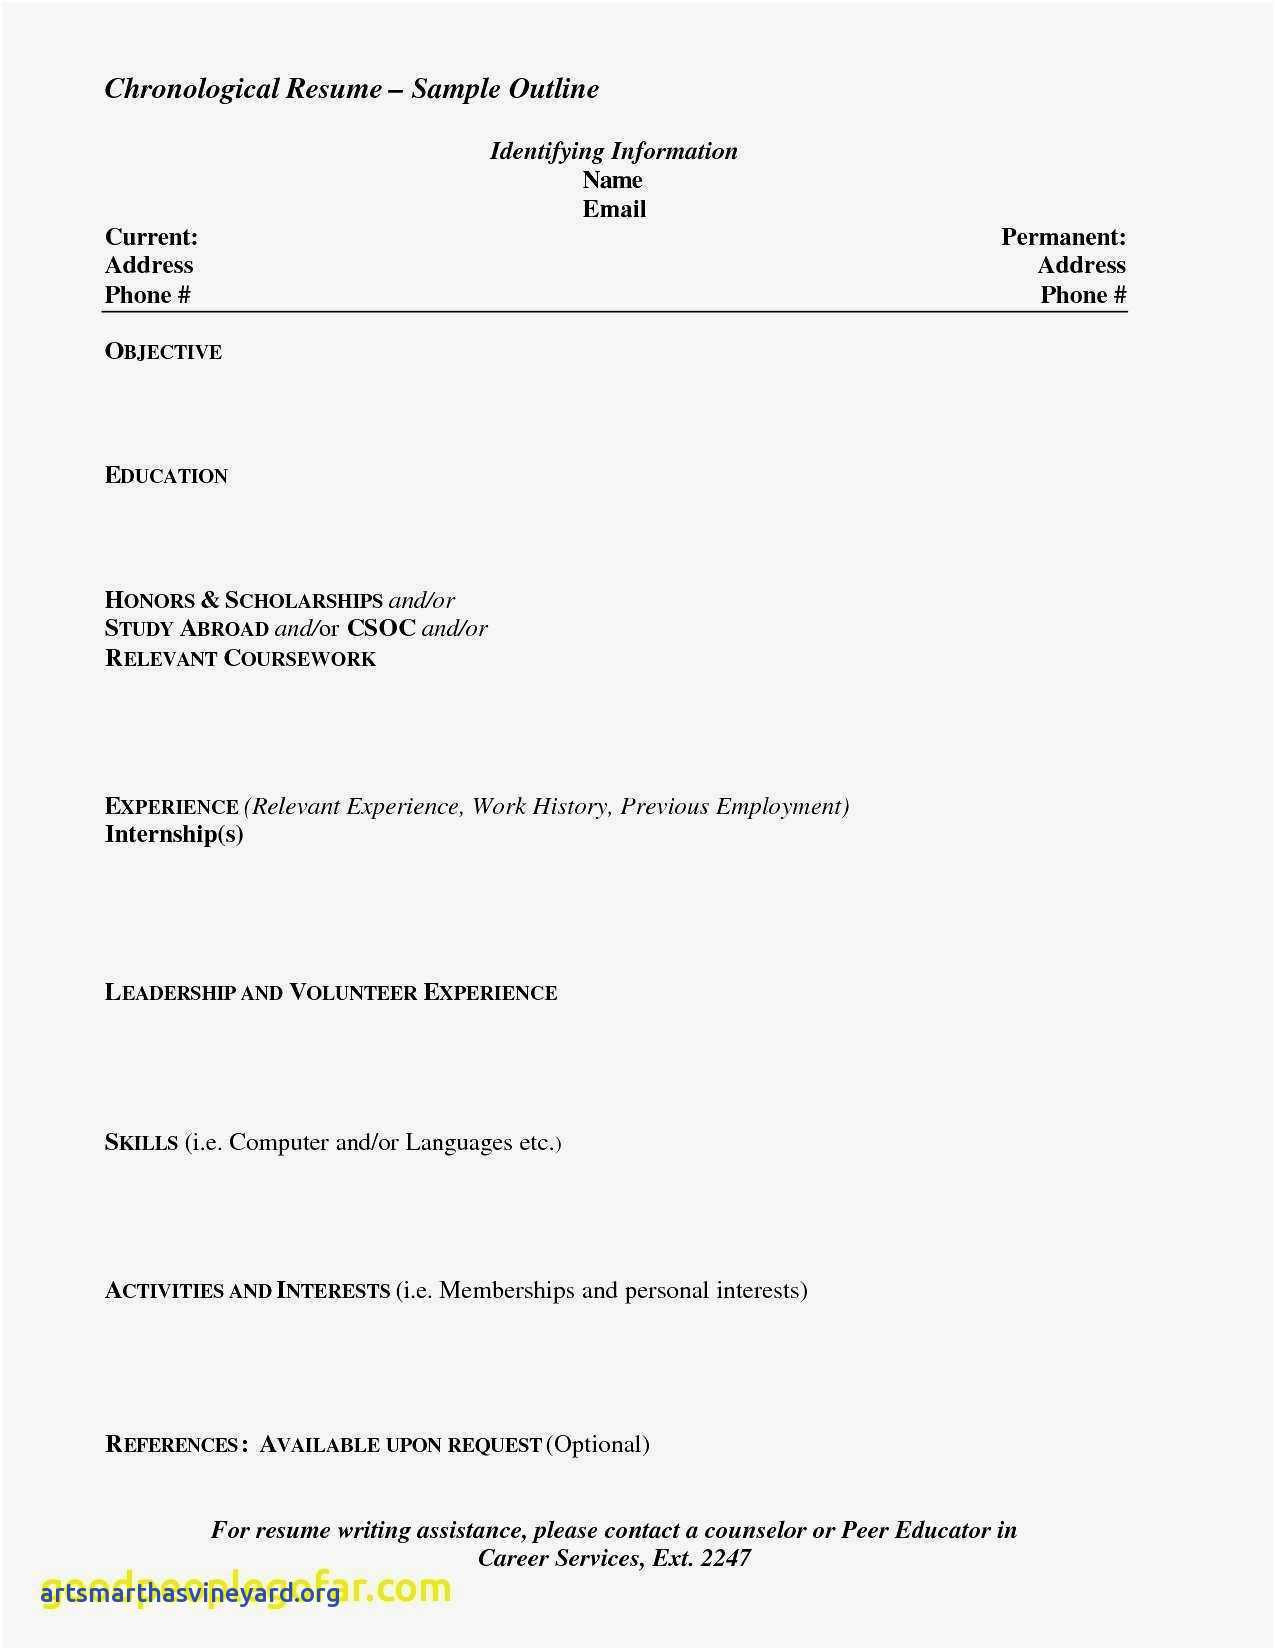 Resume without Work Experience - Resume Templates High School Students No Experience Simple Unique